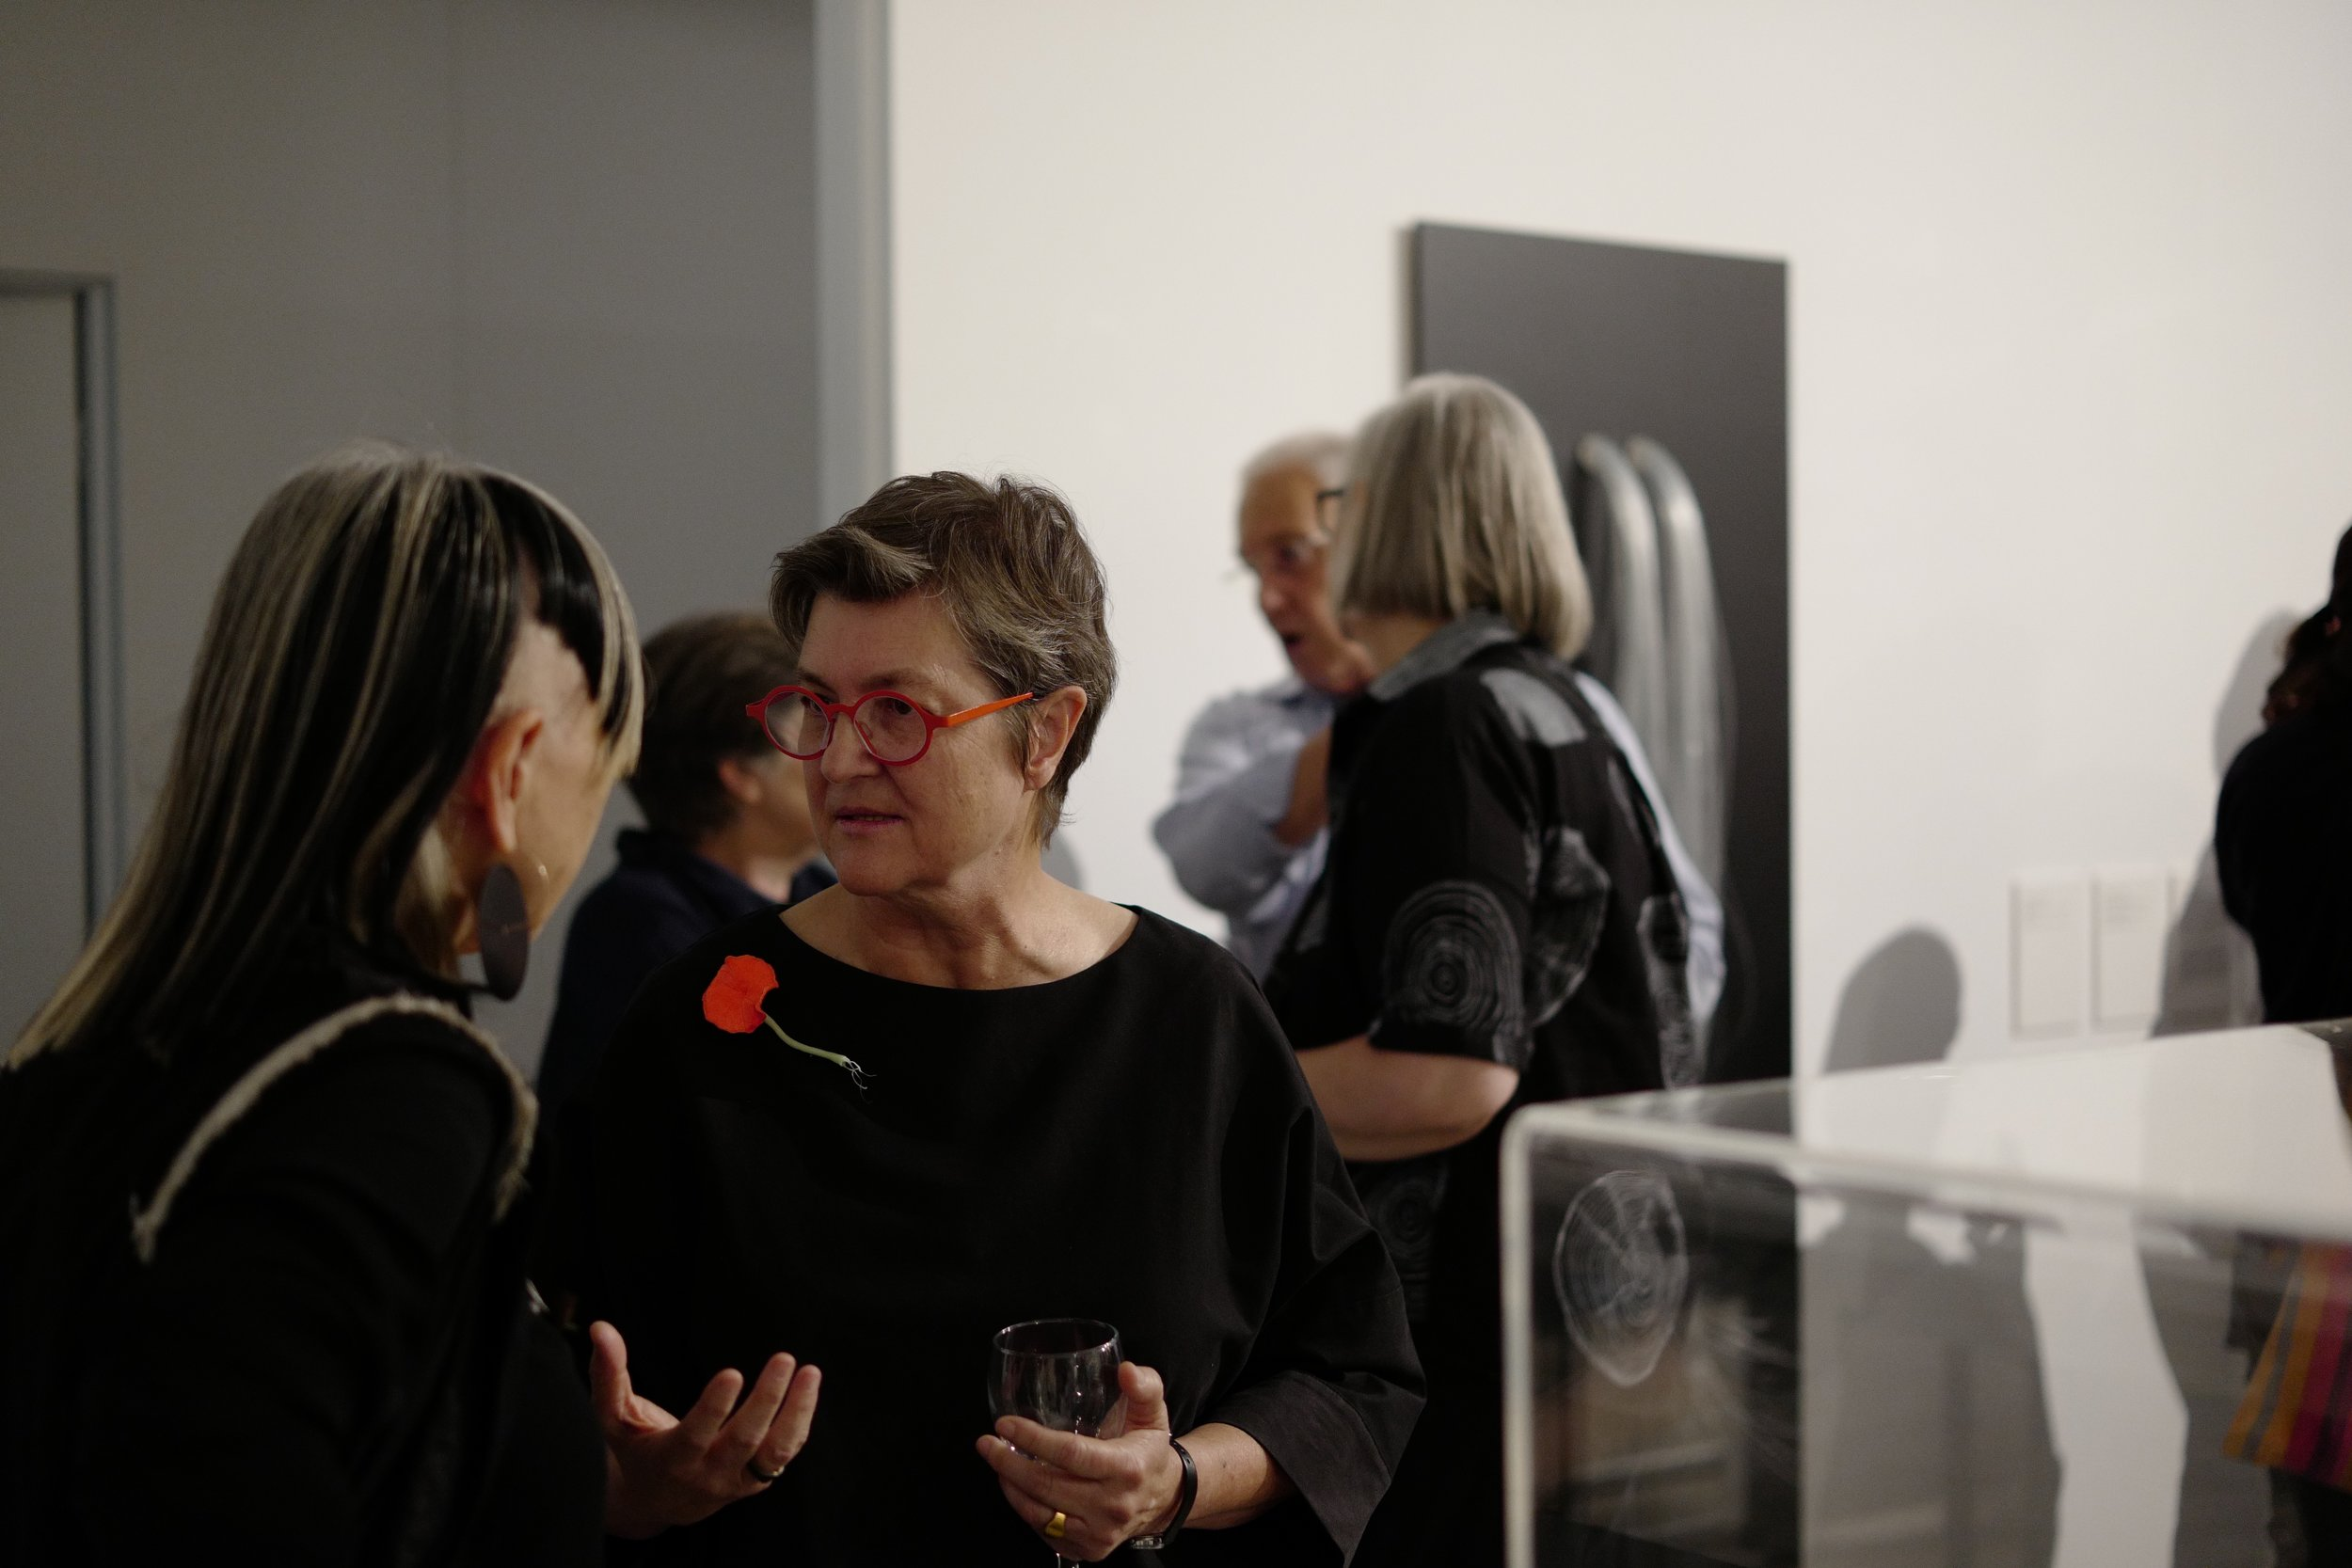 Craft Victoria_Catherine Truman_No surface holds_2019_Opening event_Photography Thomas Lentini_L1080994.jpg